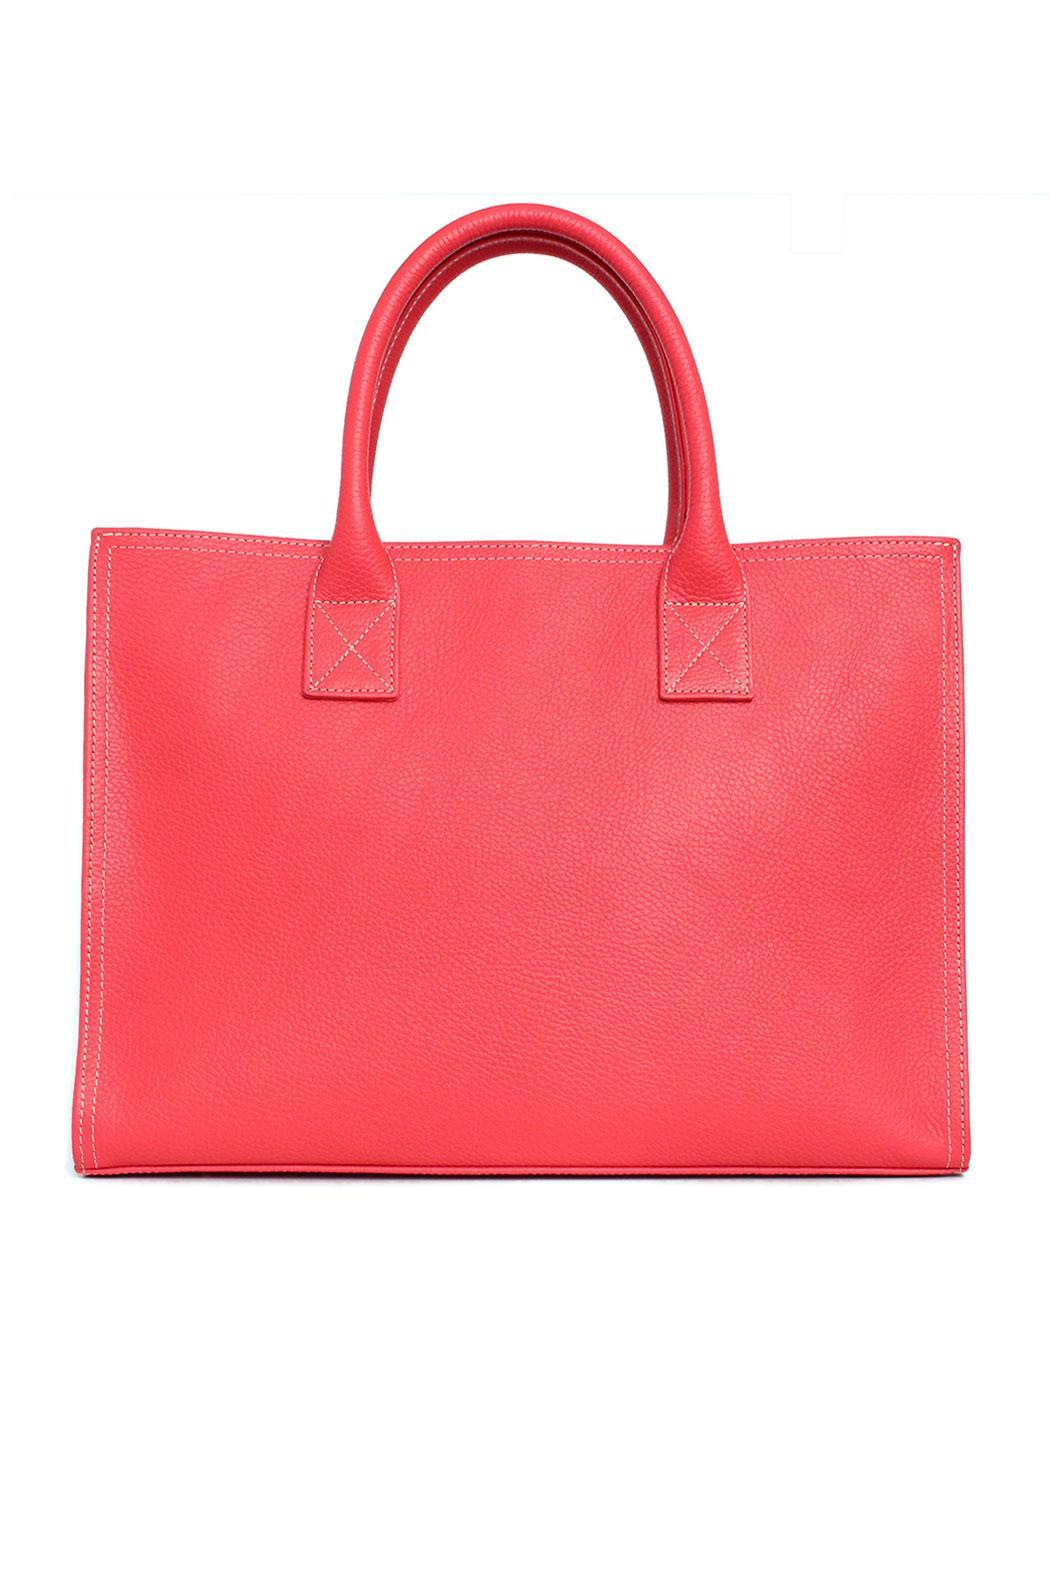 estocolmoapparel Coral Leather Bag - Front Full Image